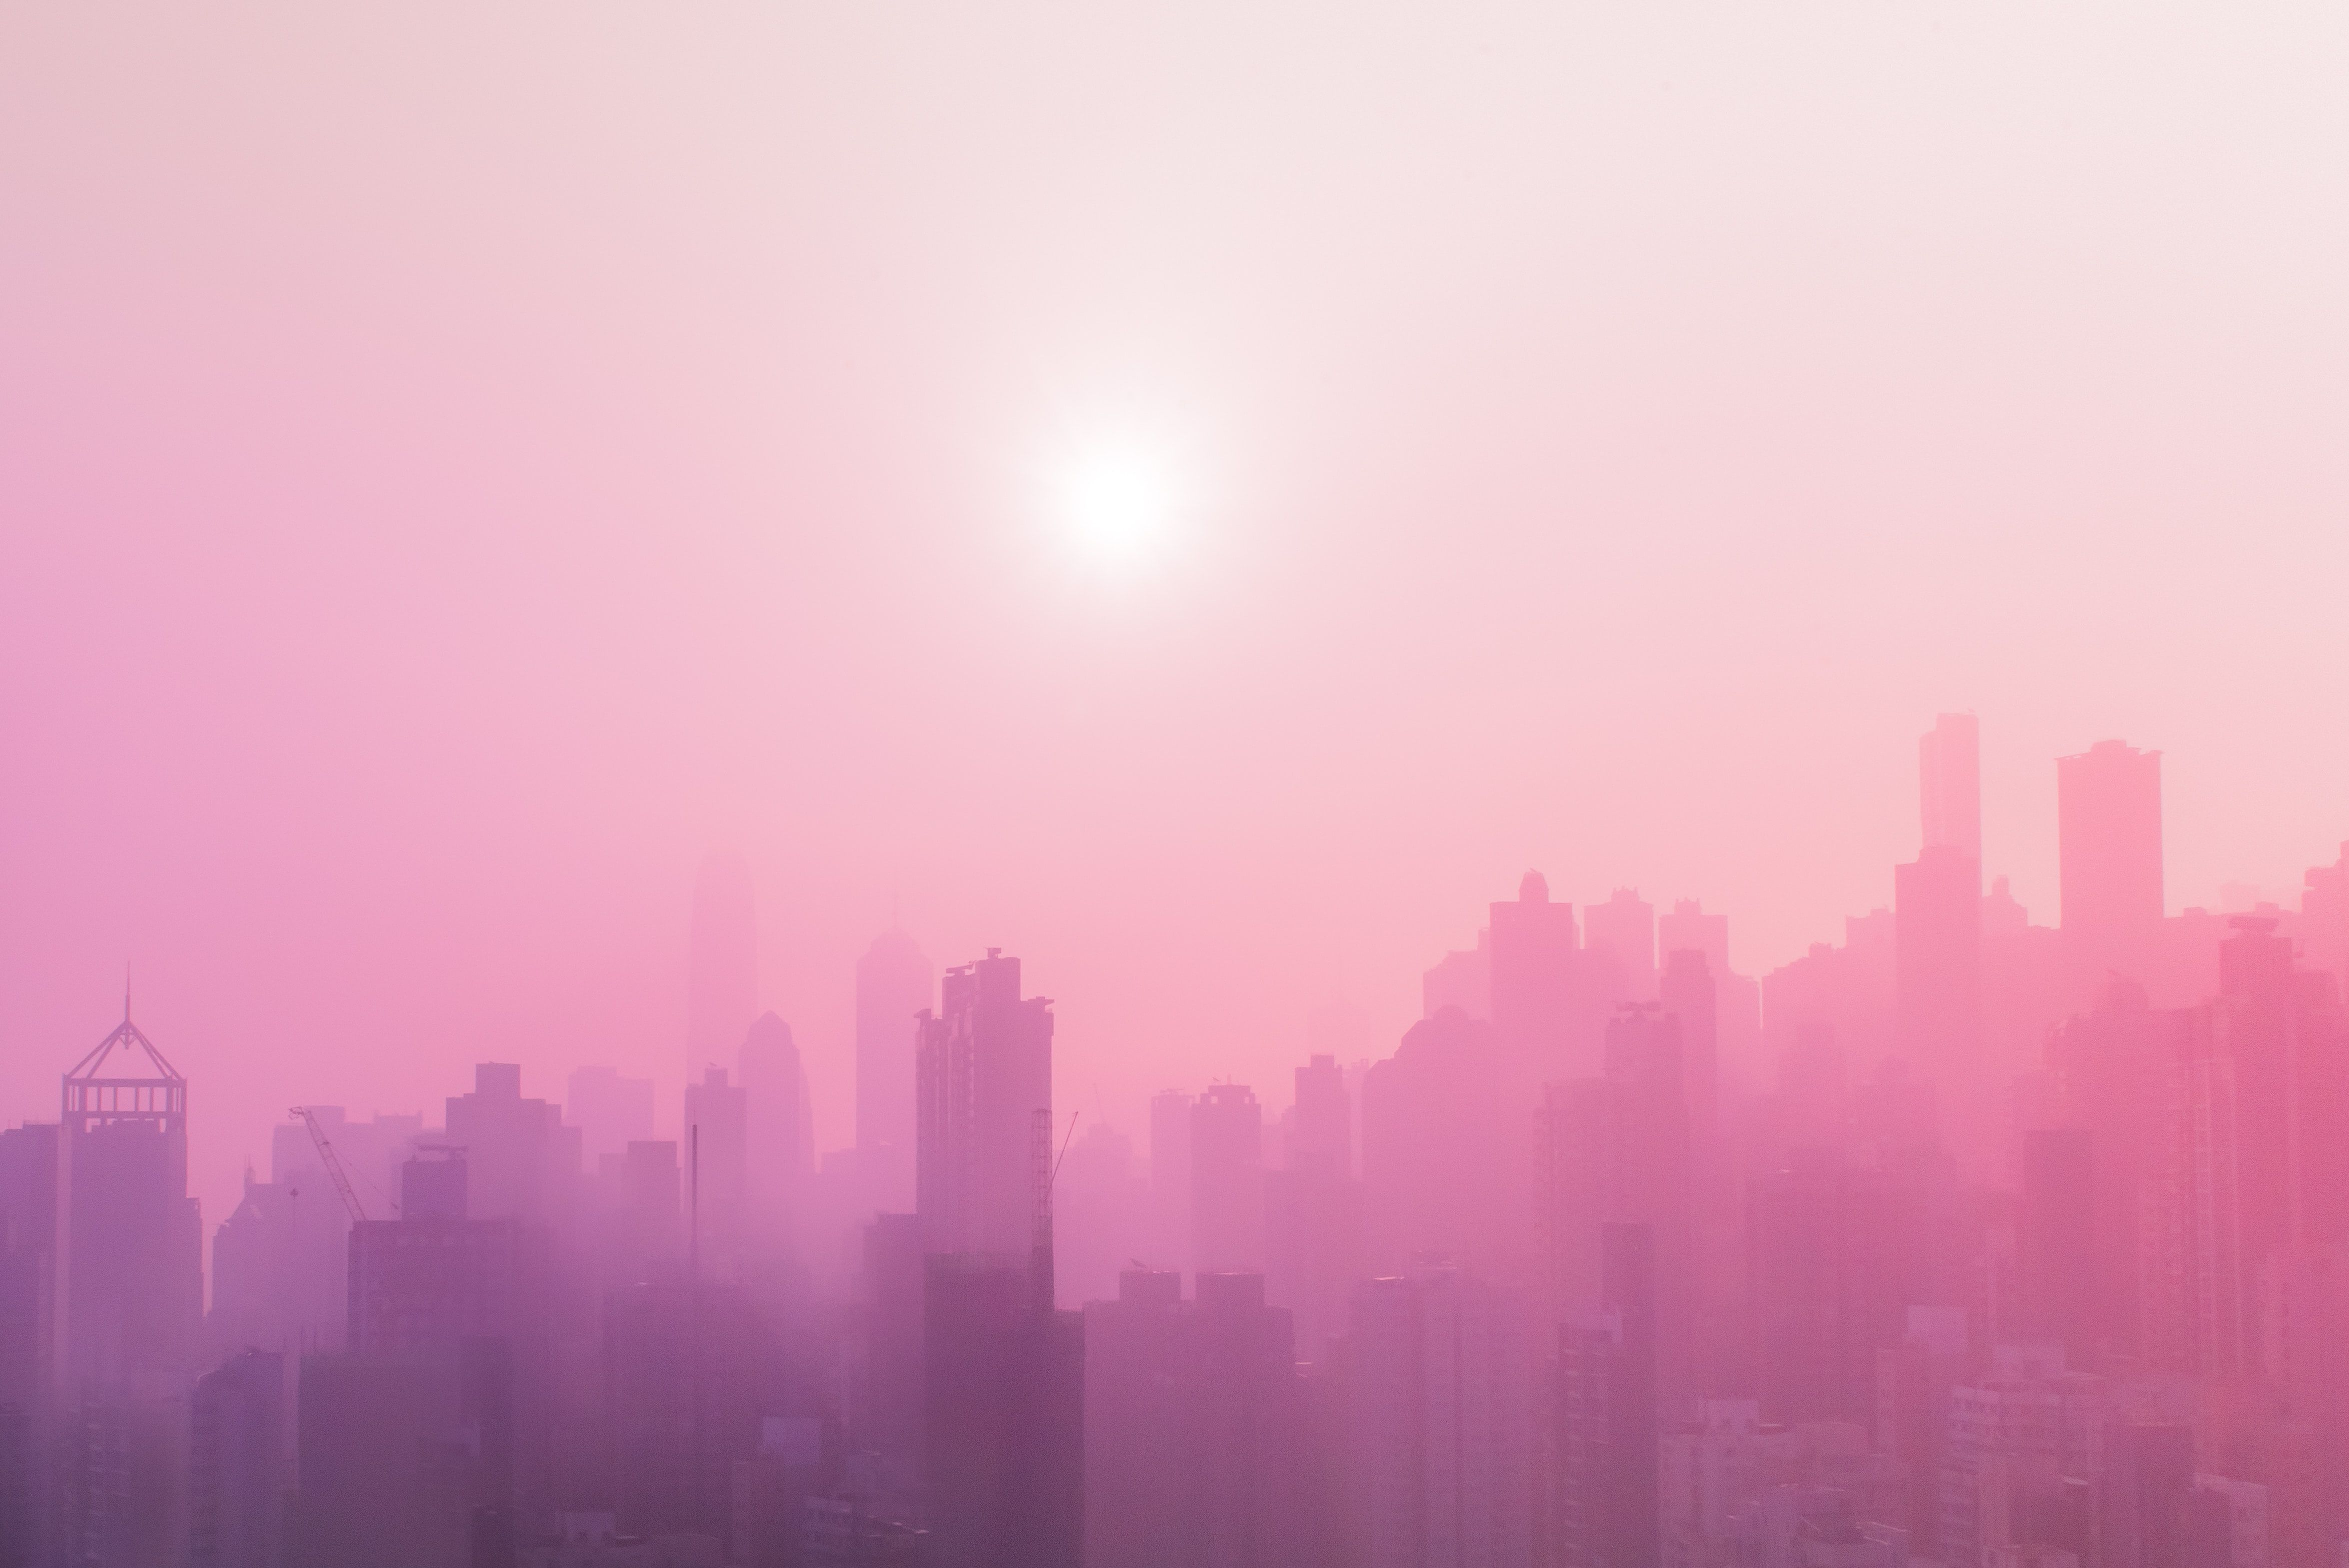 Skyscraper Covered With Fog At Daytime Aesthetic Wallpapers Aesthetic Pastel Wallpaper Aesthetic Backgrounds